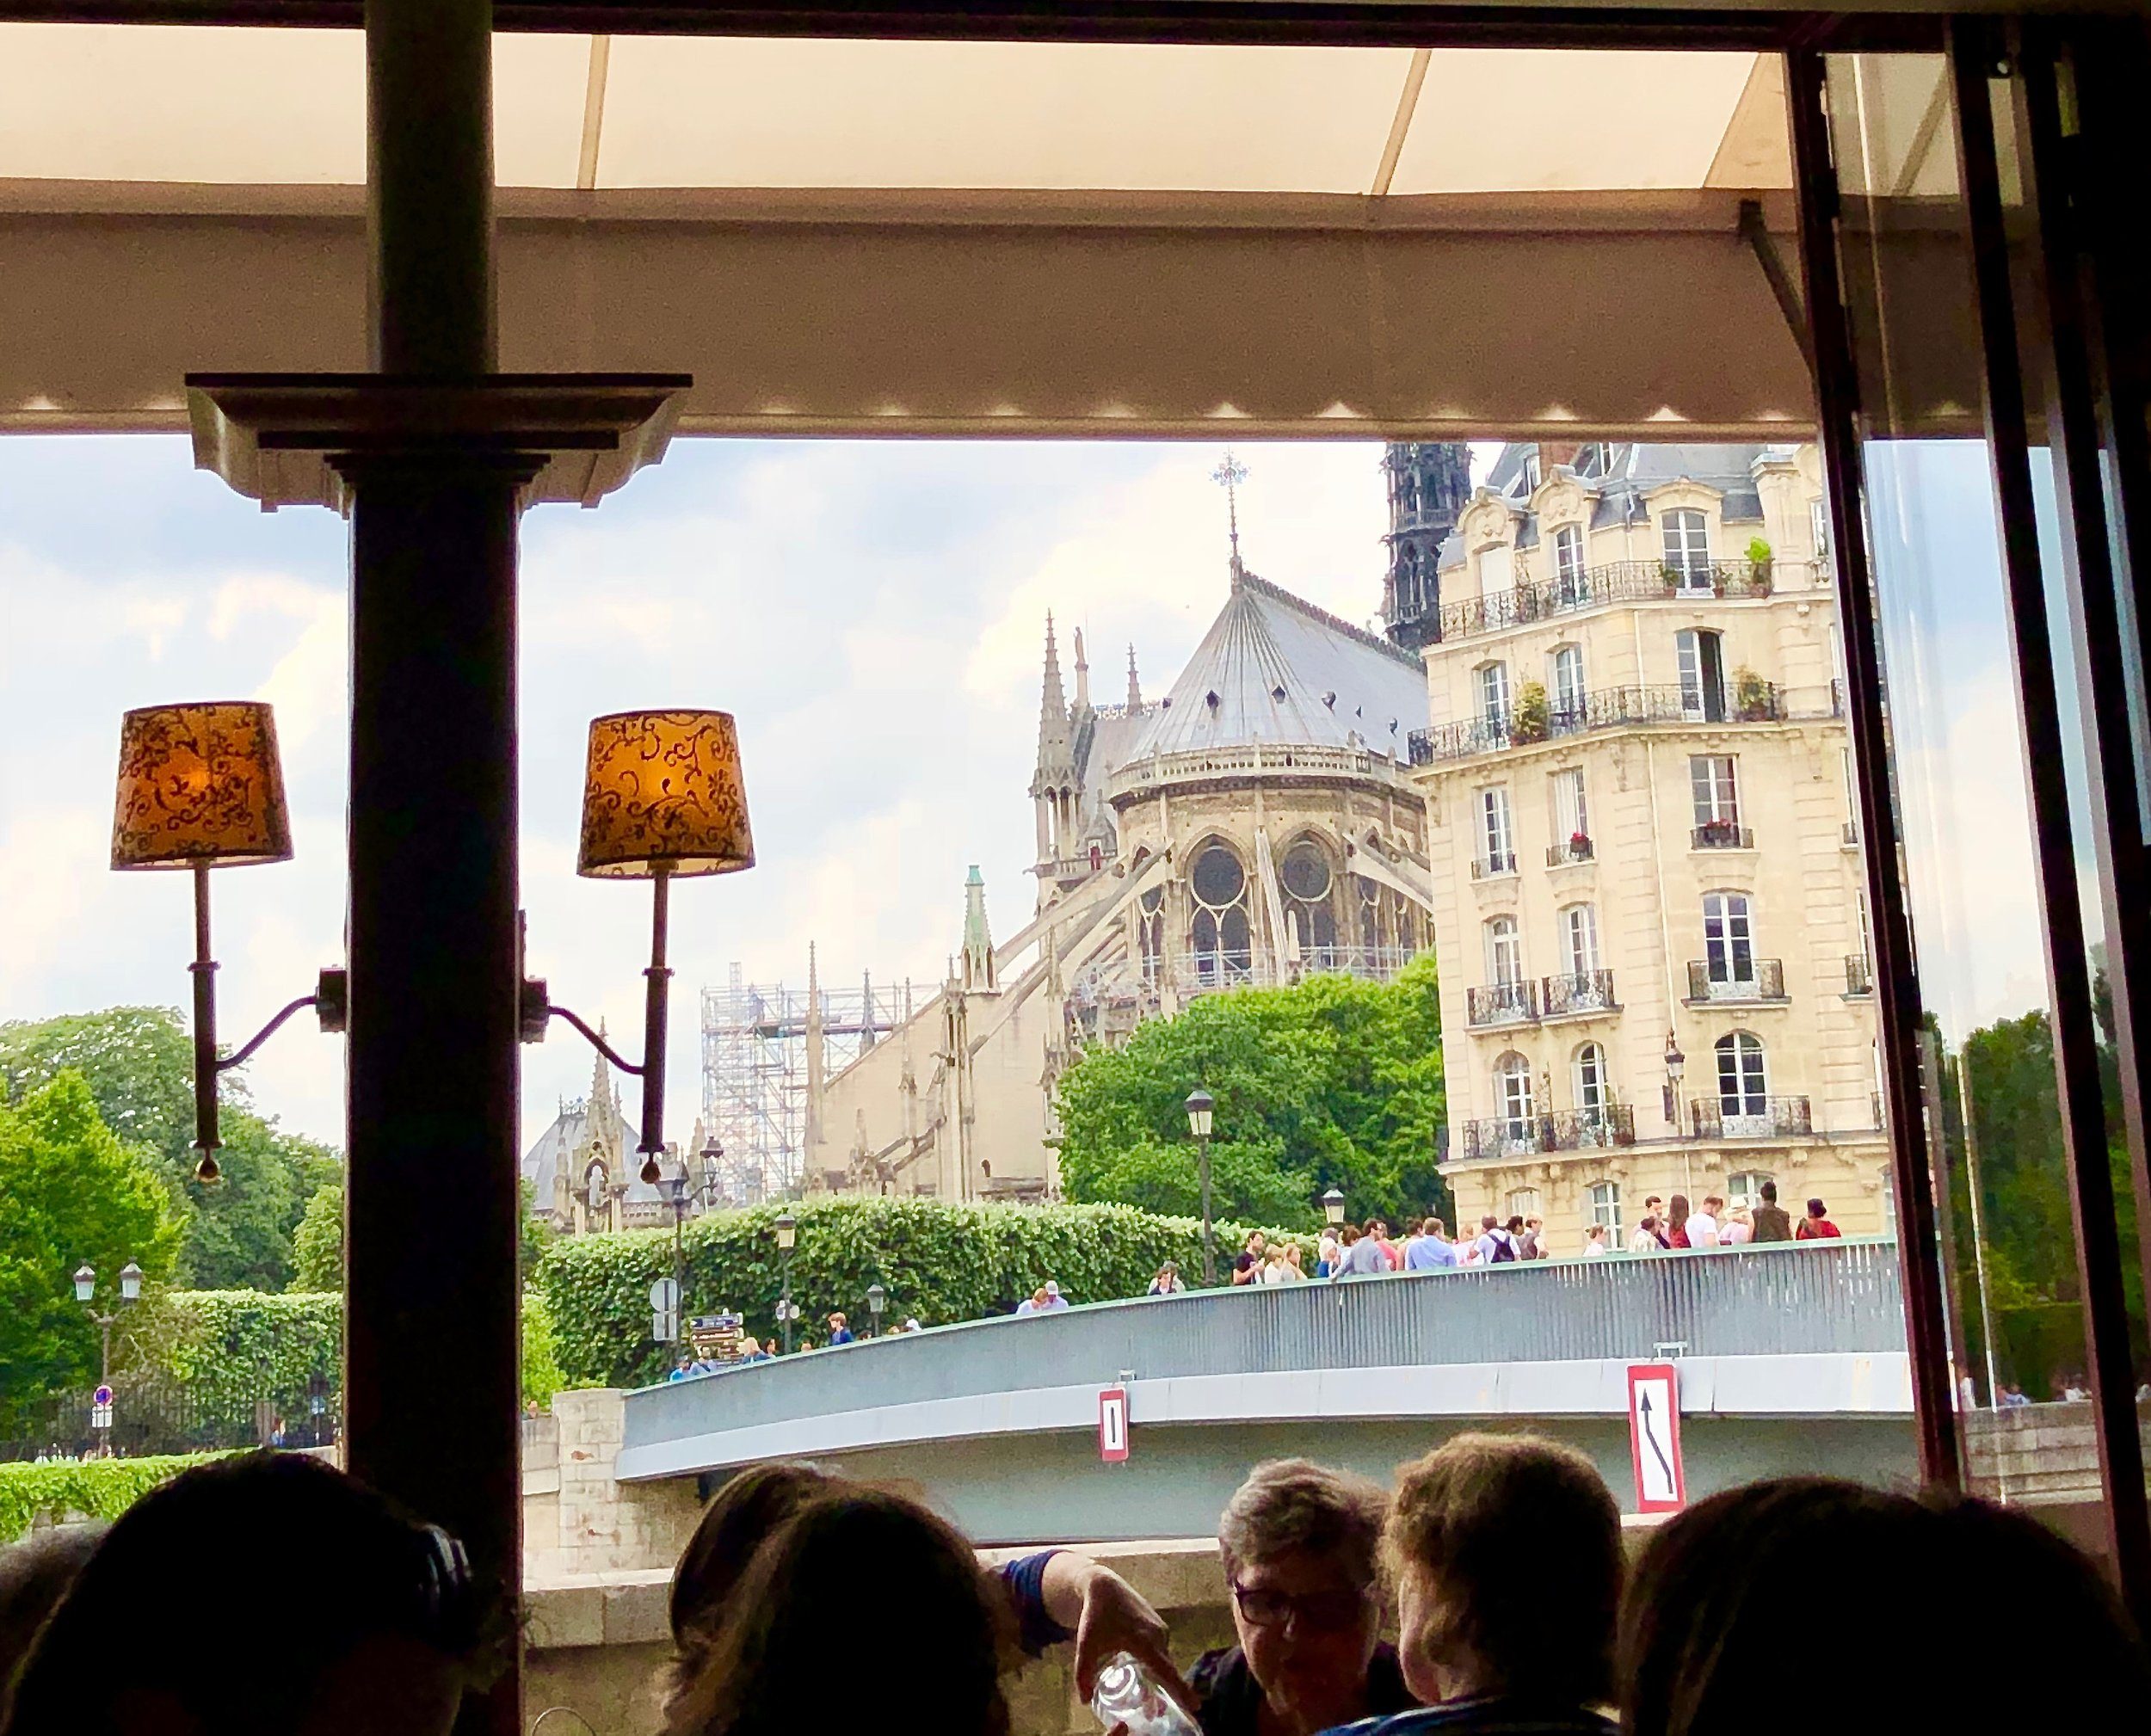 Le Flore en I'ile Paris France - great view of Notre Dame!